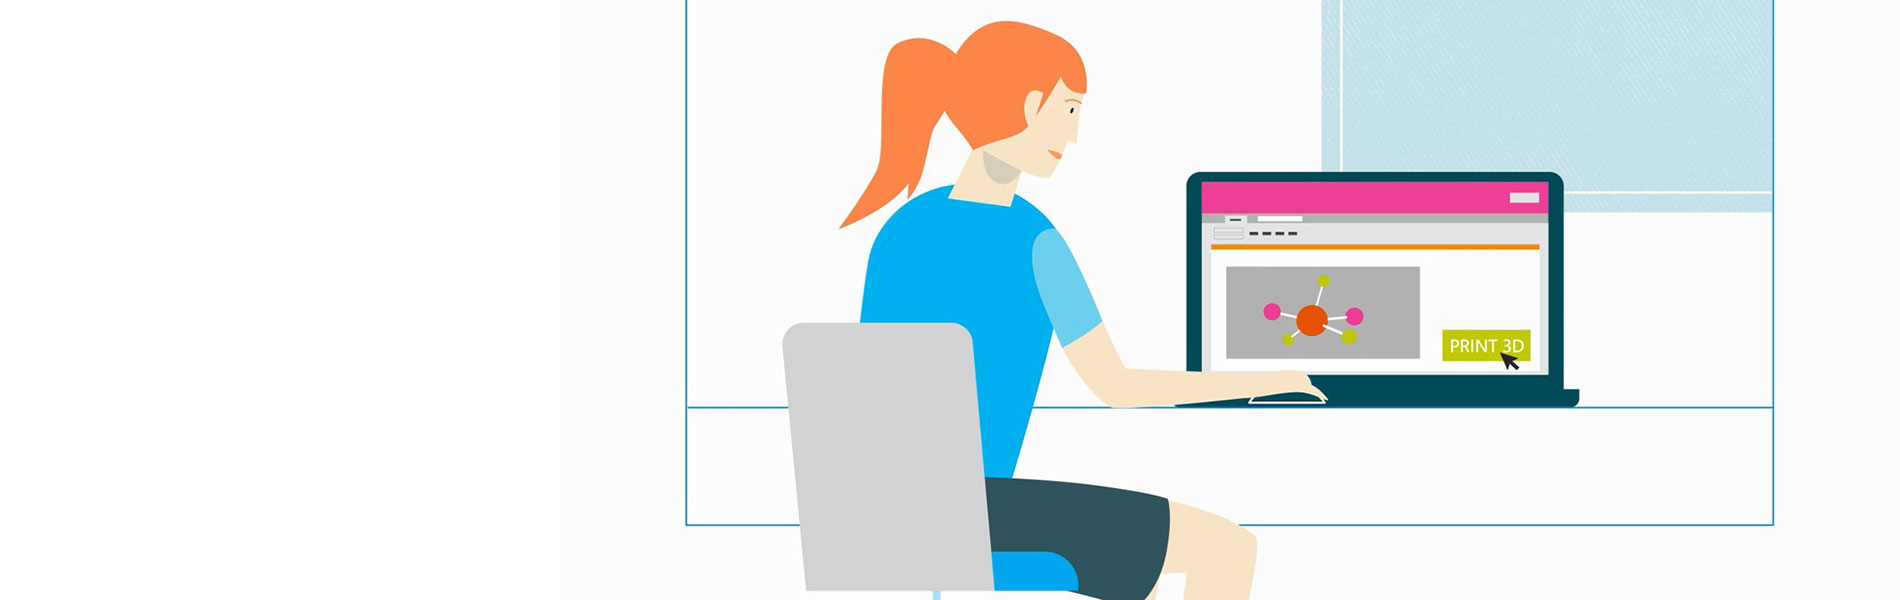 Illustration of a woman sitting at a desk with 3D modelling software, about to click the 3D print button